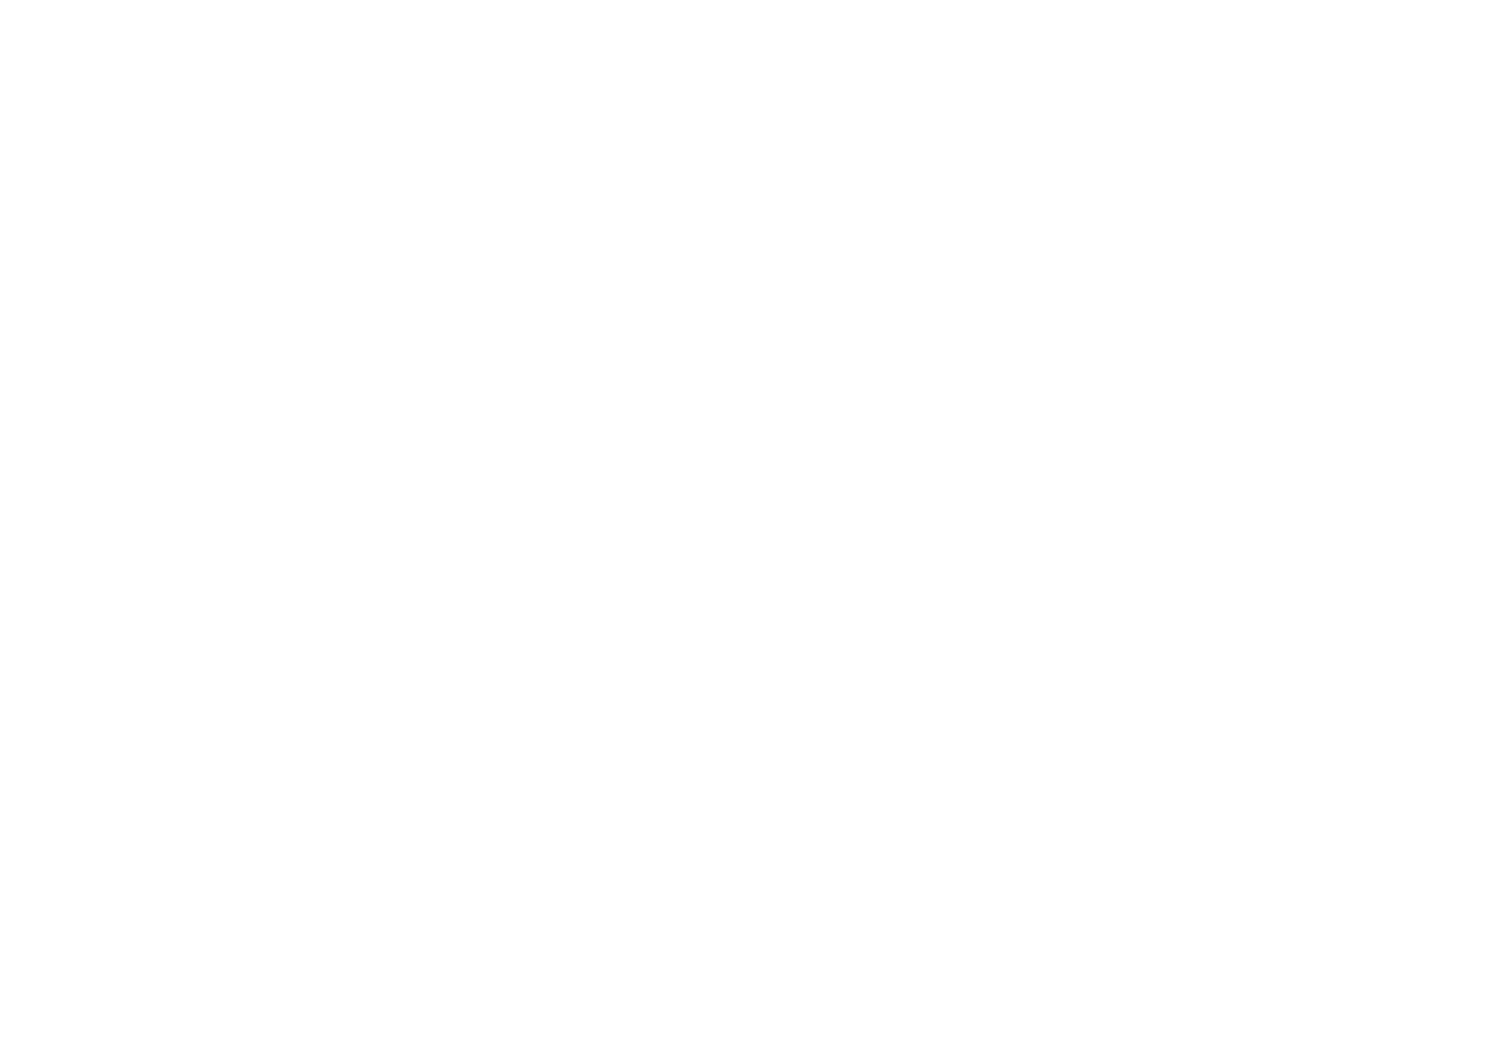 Sailways Festival